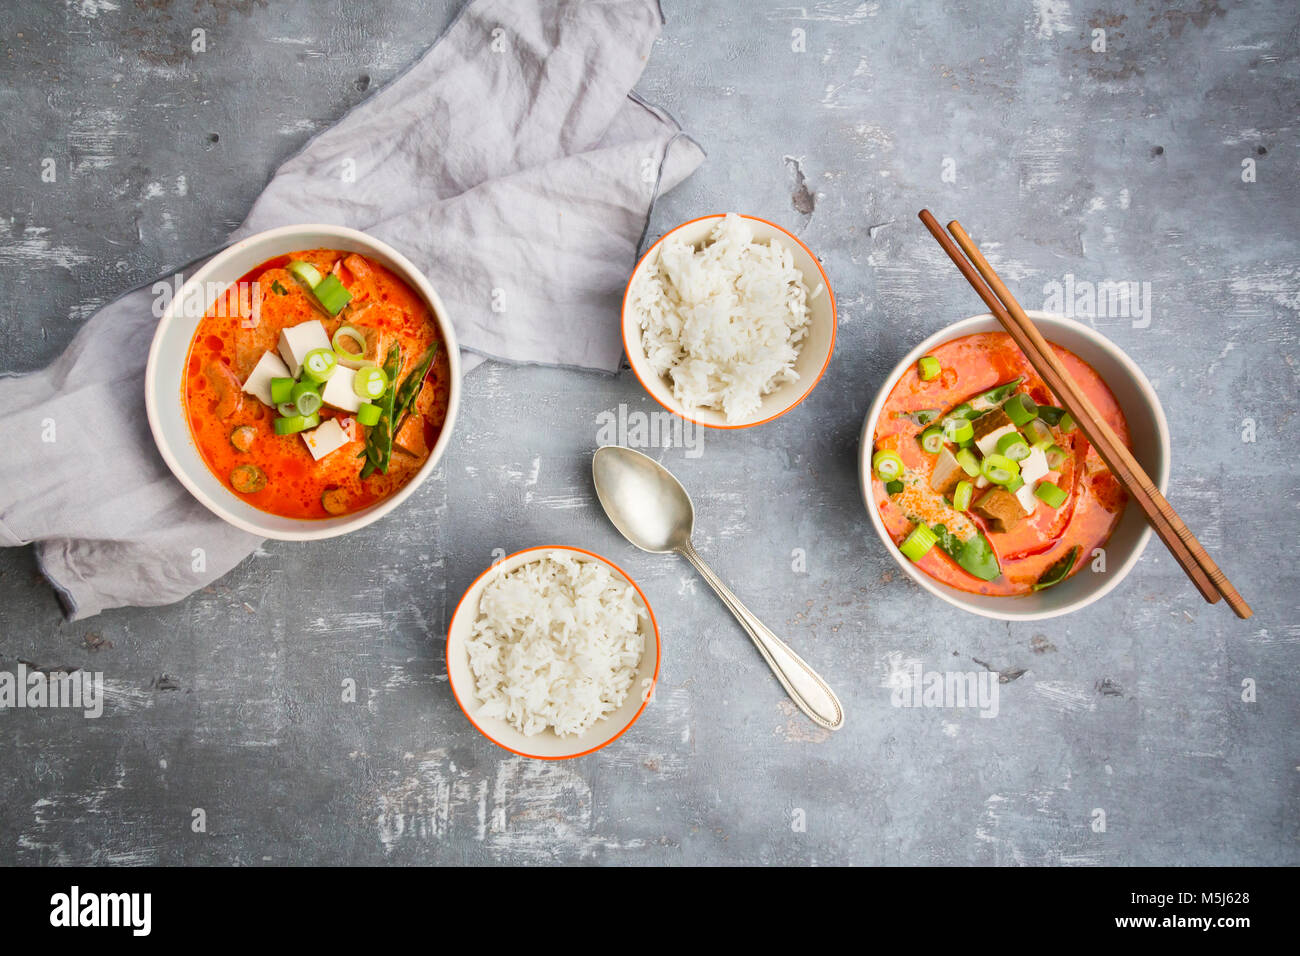 Red curry dish with smoked tofu - Stock Image